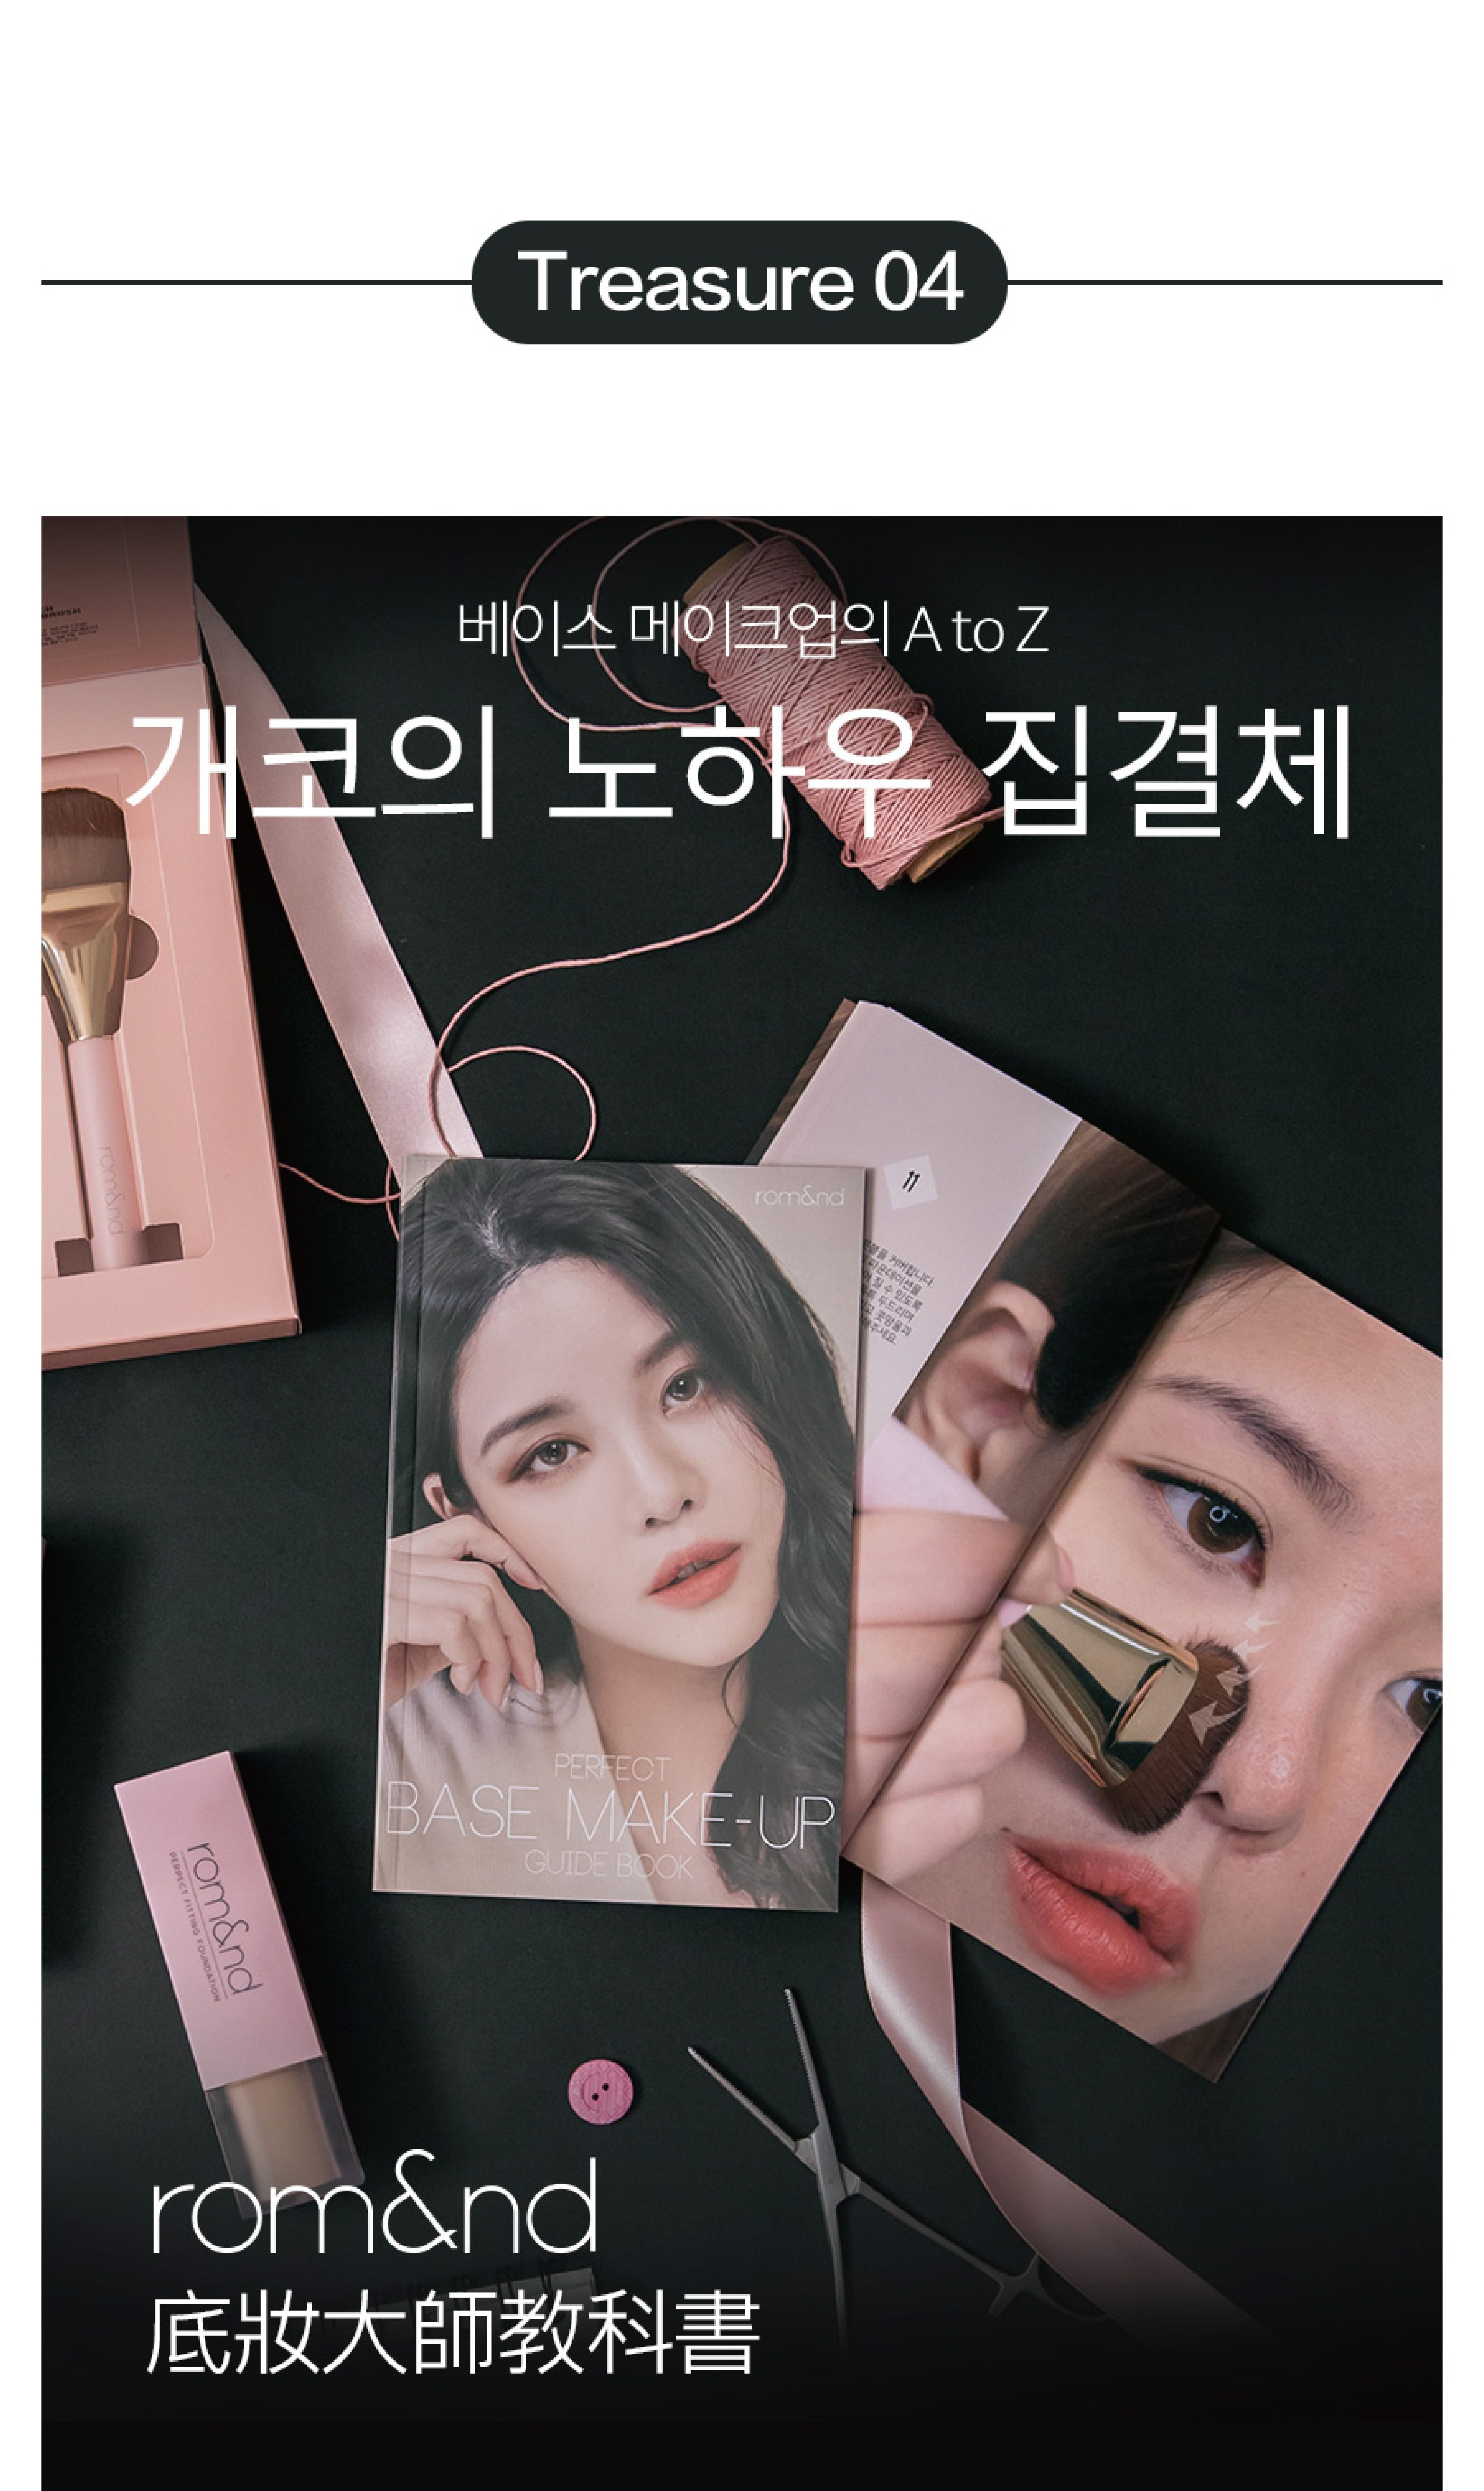 Pin on 0.3cm極細染眉膏 Makeup, Movie posters, Poster